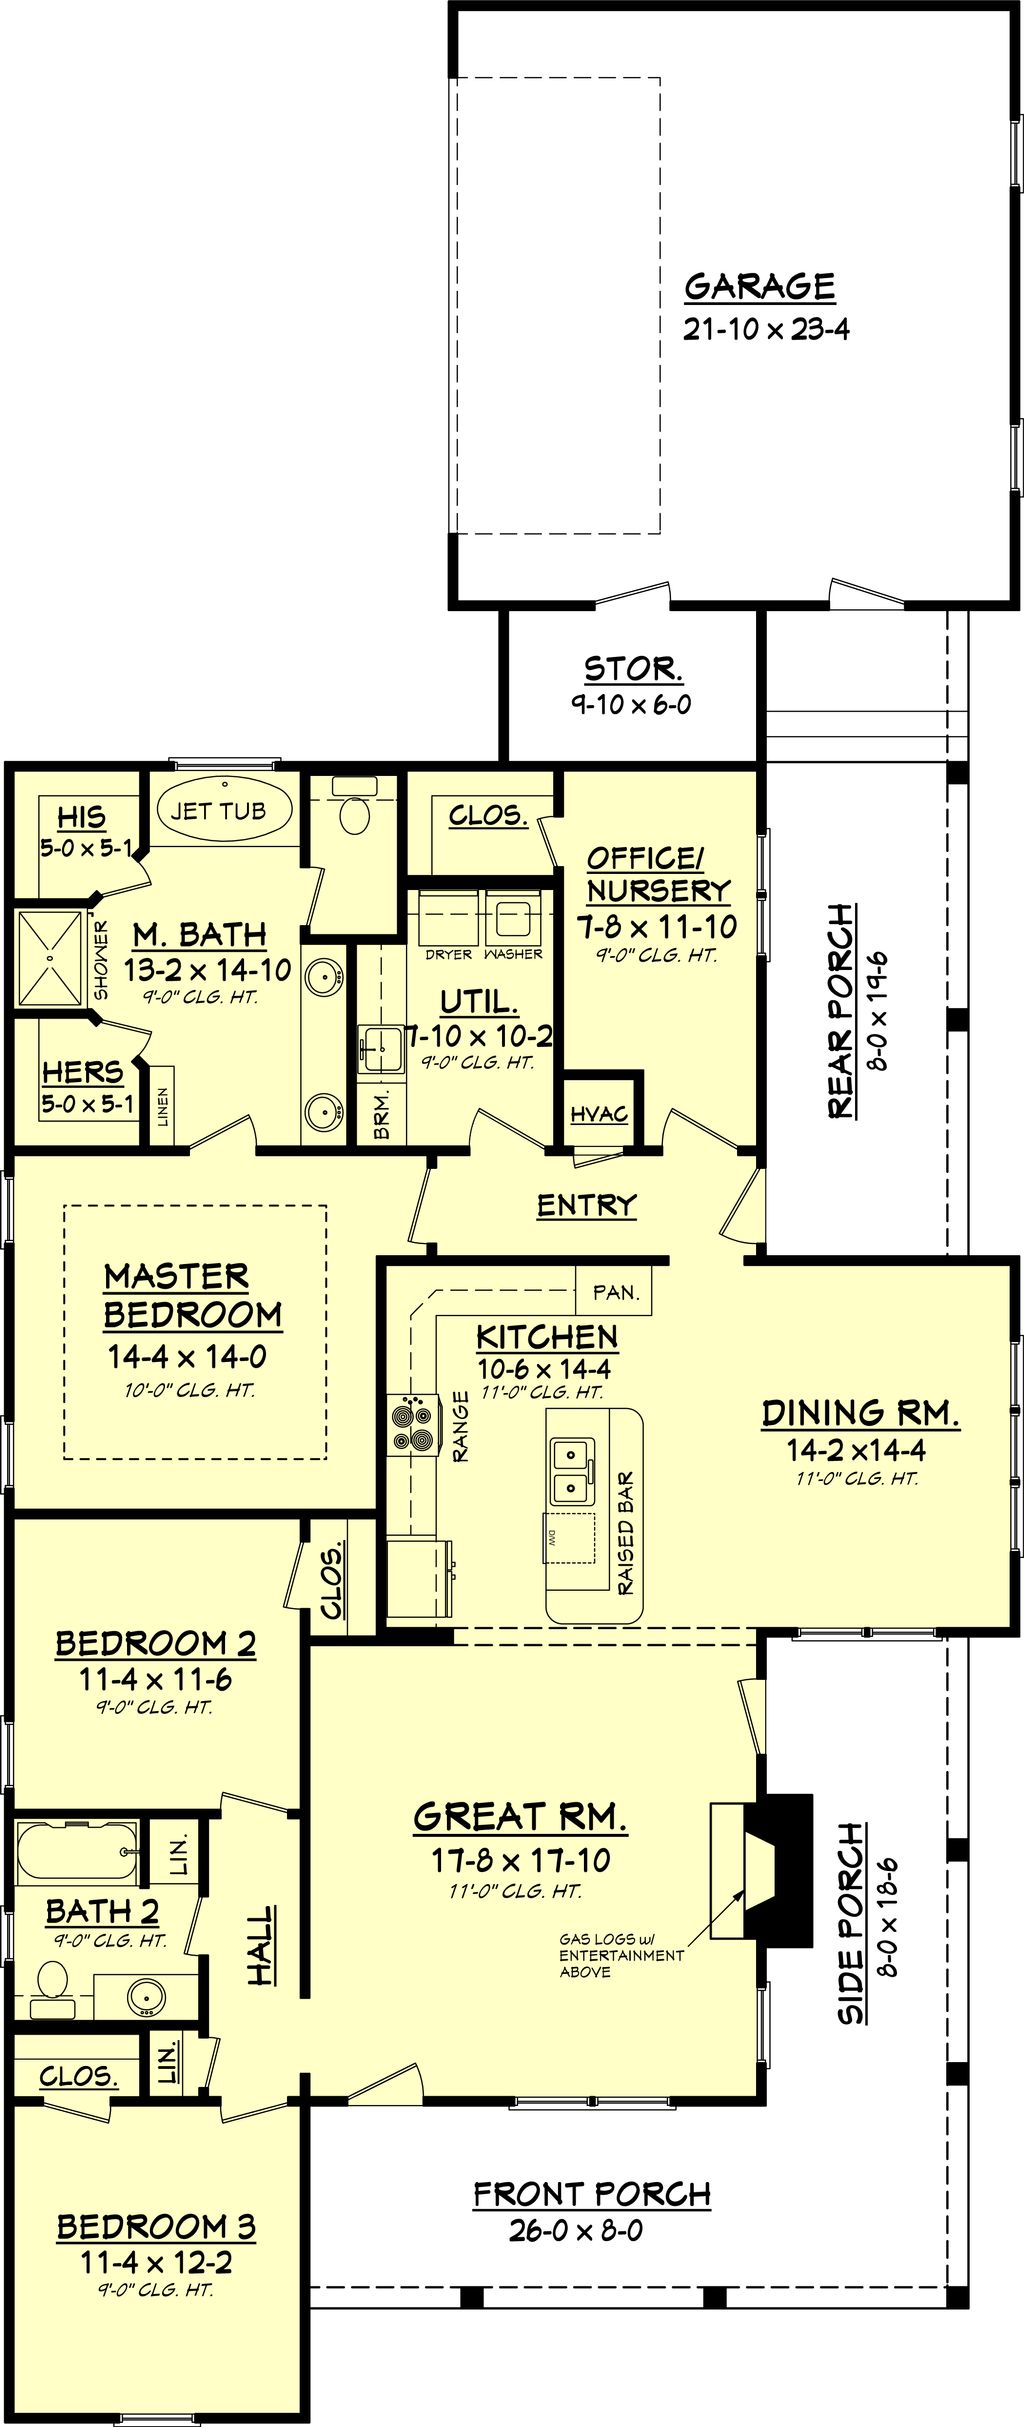 Country Style House Plan - 3 Beds 2 Baths 1900 Sq/Ft Plan #430-56 on 1900 historic house plans, tire houses plans, 1900 square feet house, square home floor plans, american foursquare house design plans, 1900 style house plans, 1700 square feet floor plans, 1900 victorian house plans, square 4-bedroom ranch house plans, the villages florida floor plans, 1900 home floor plans, american 4 square house plans, 170 square feet floor plans, 18 century victorian house plans, 1700 sq ft ranch house plans, 1900 montgomery ward house plans, modern foursquare house plans, 1890 house plans, 32x60 house plans, 1900 american foursquare house plans,